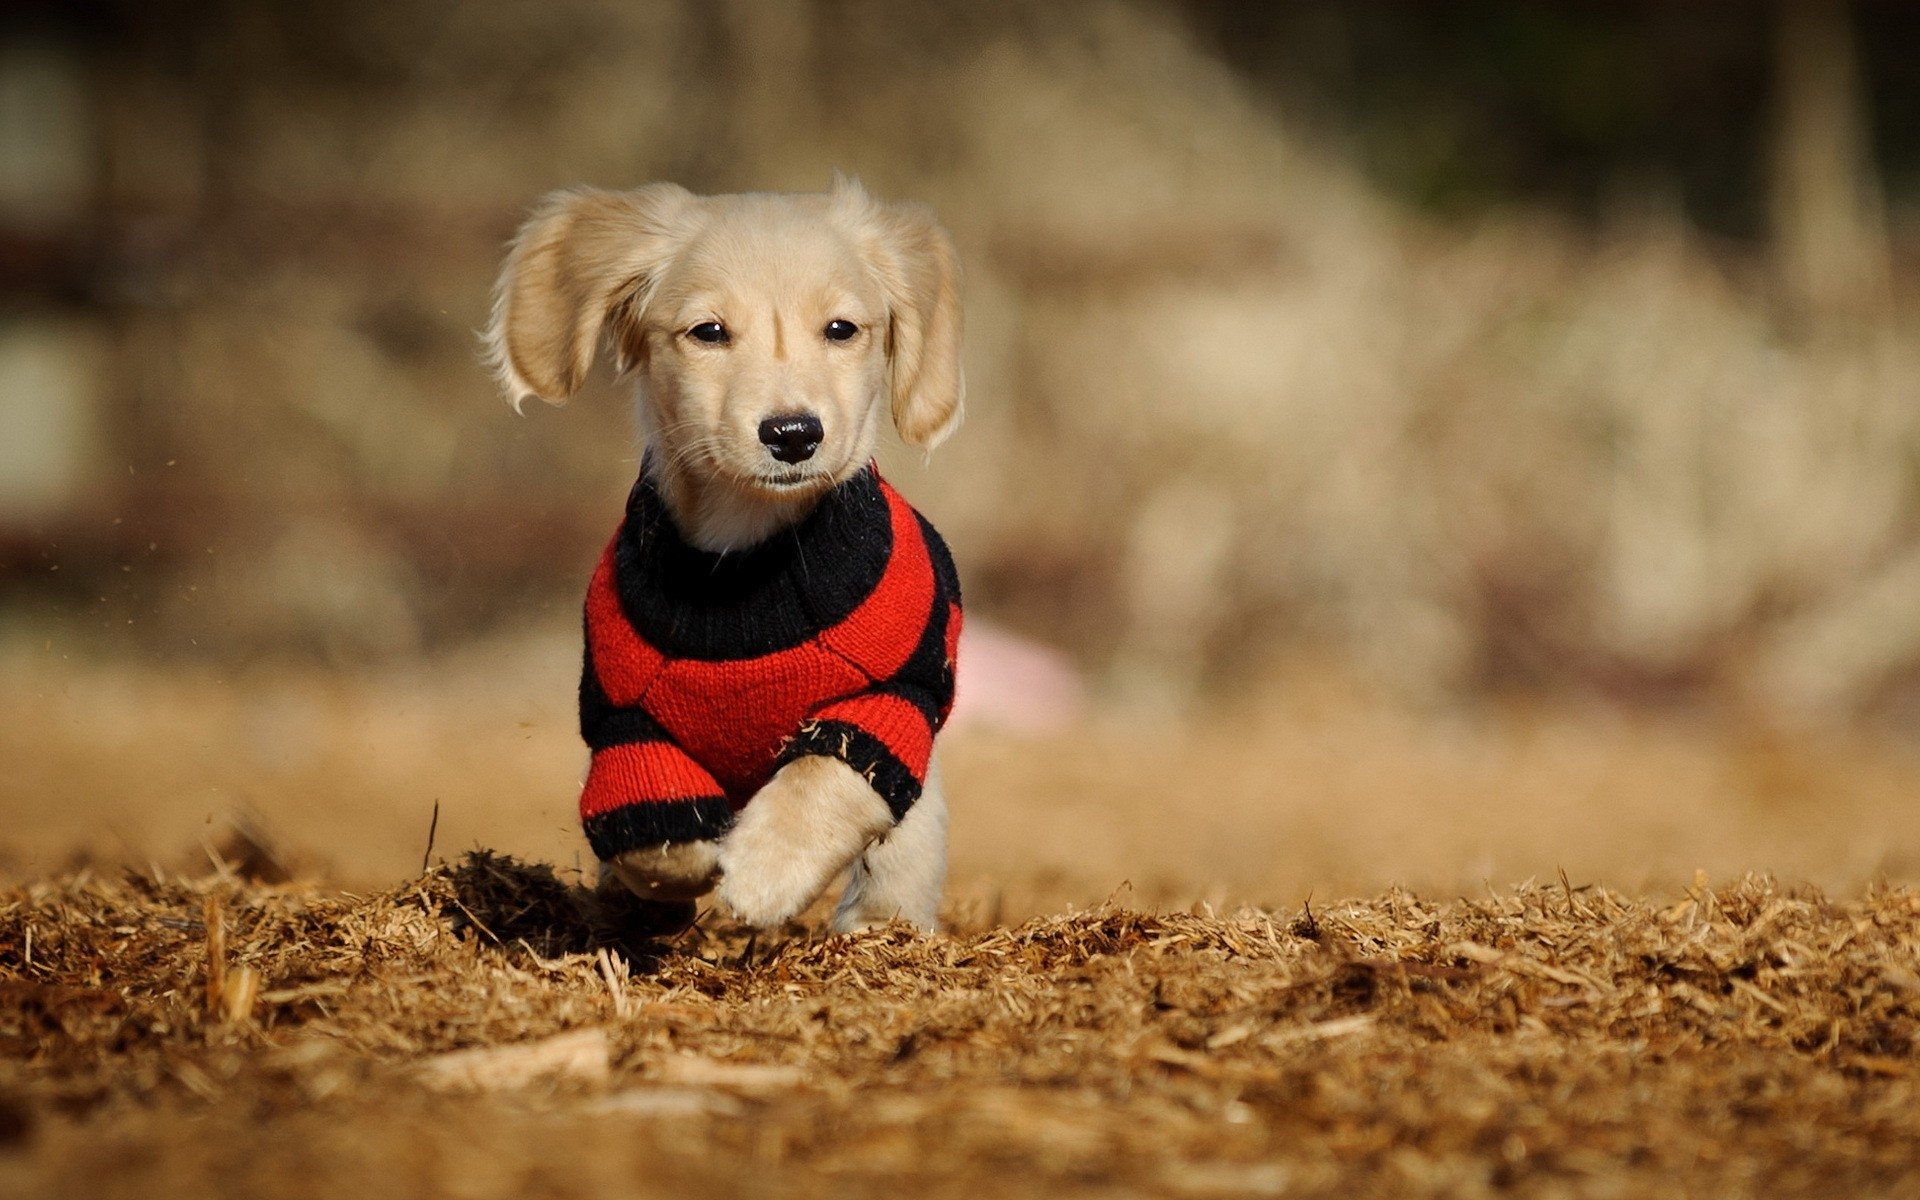 Animal · Clothed Cute Dog · Wallpapers For DesktopHd …